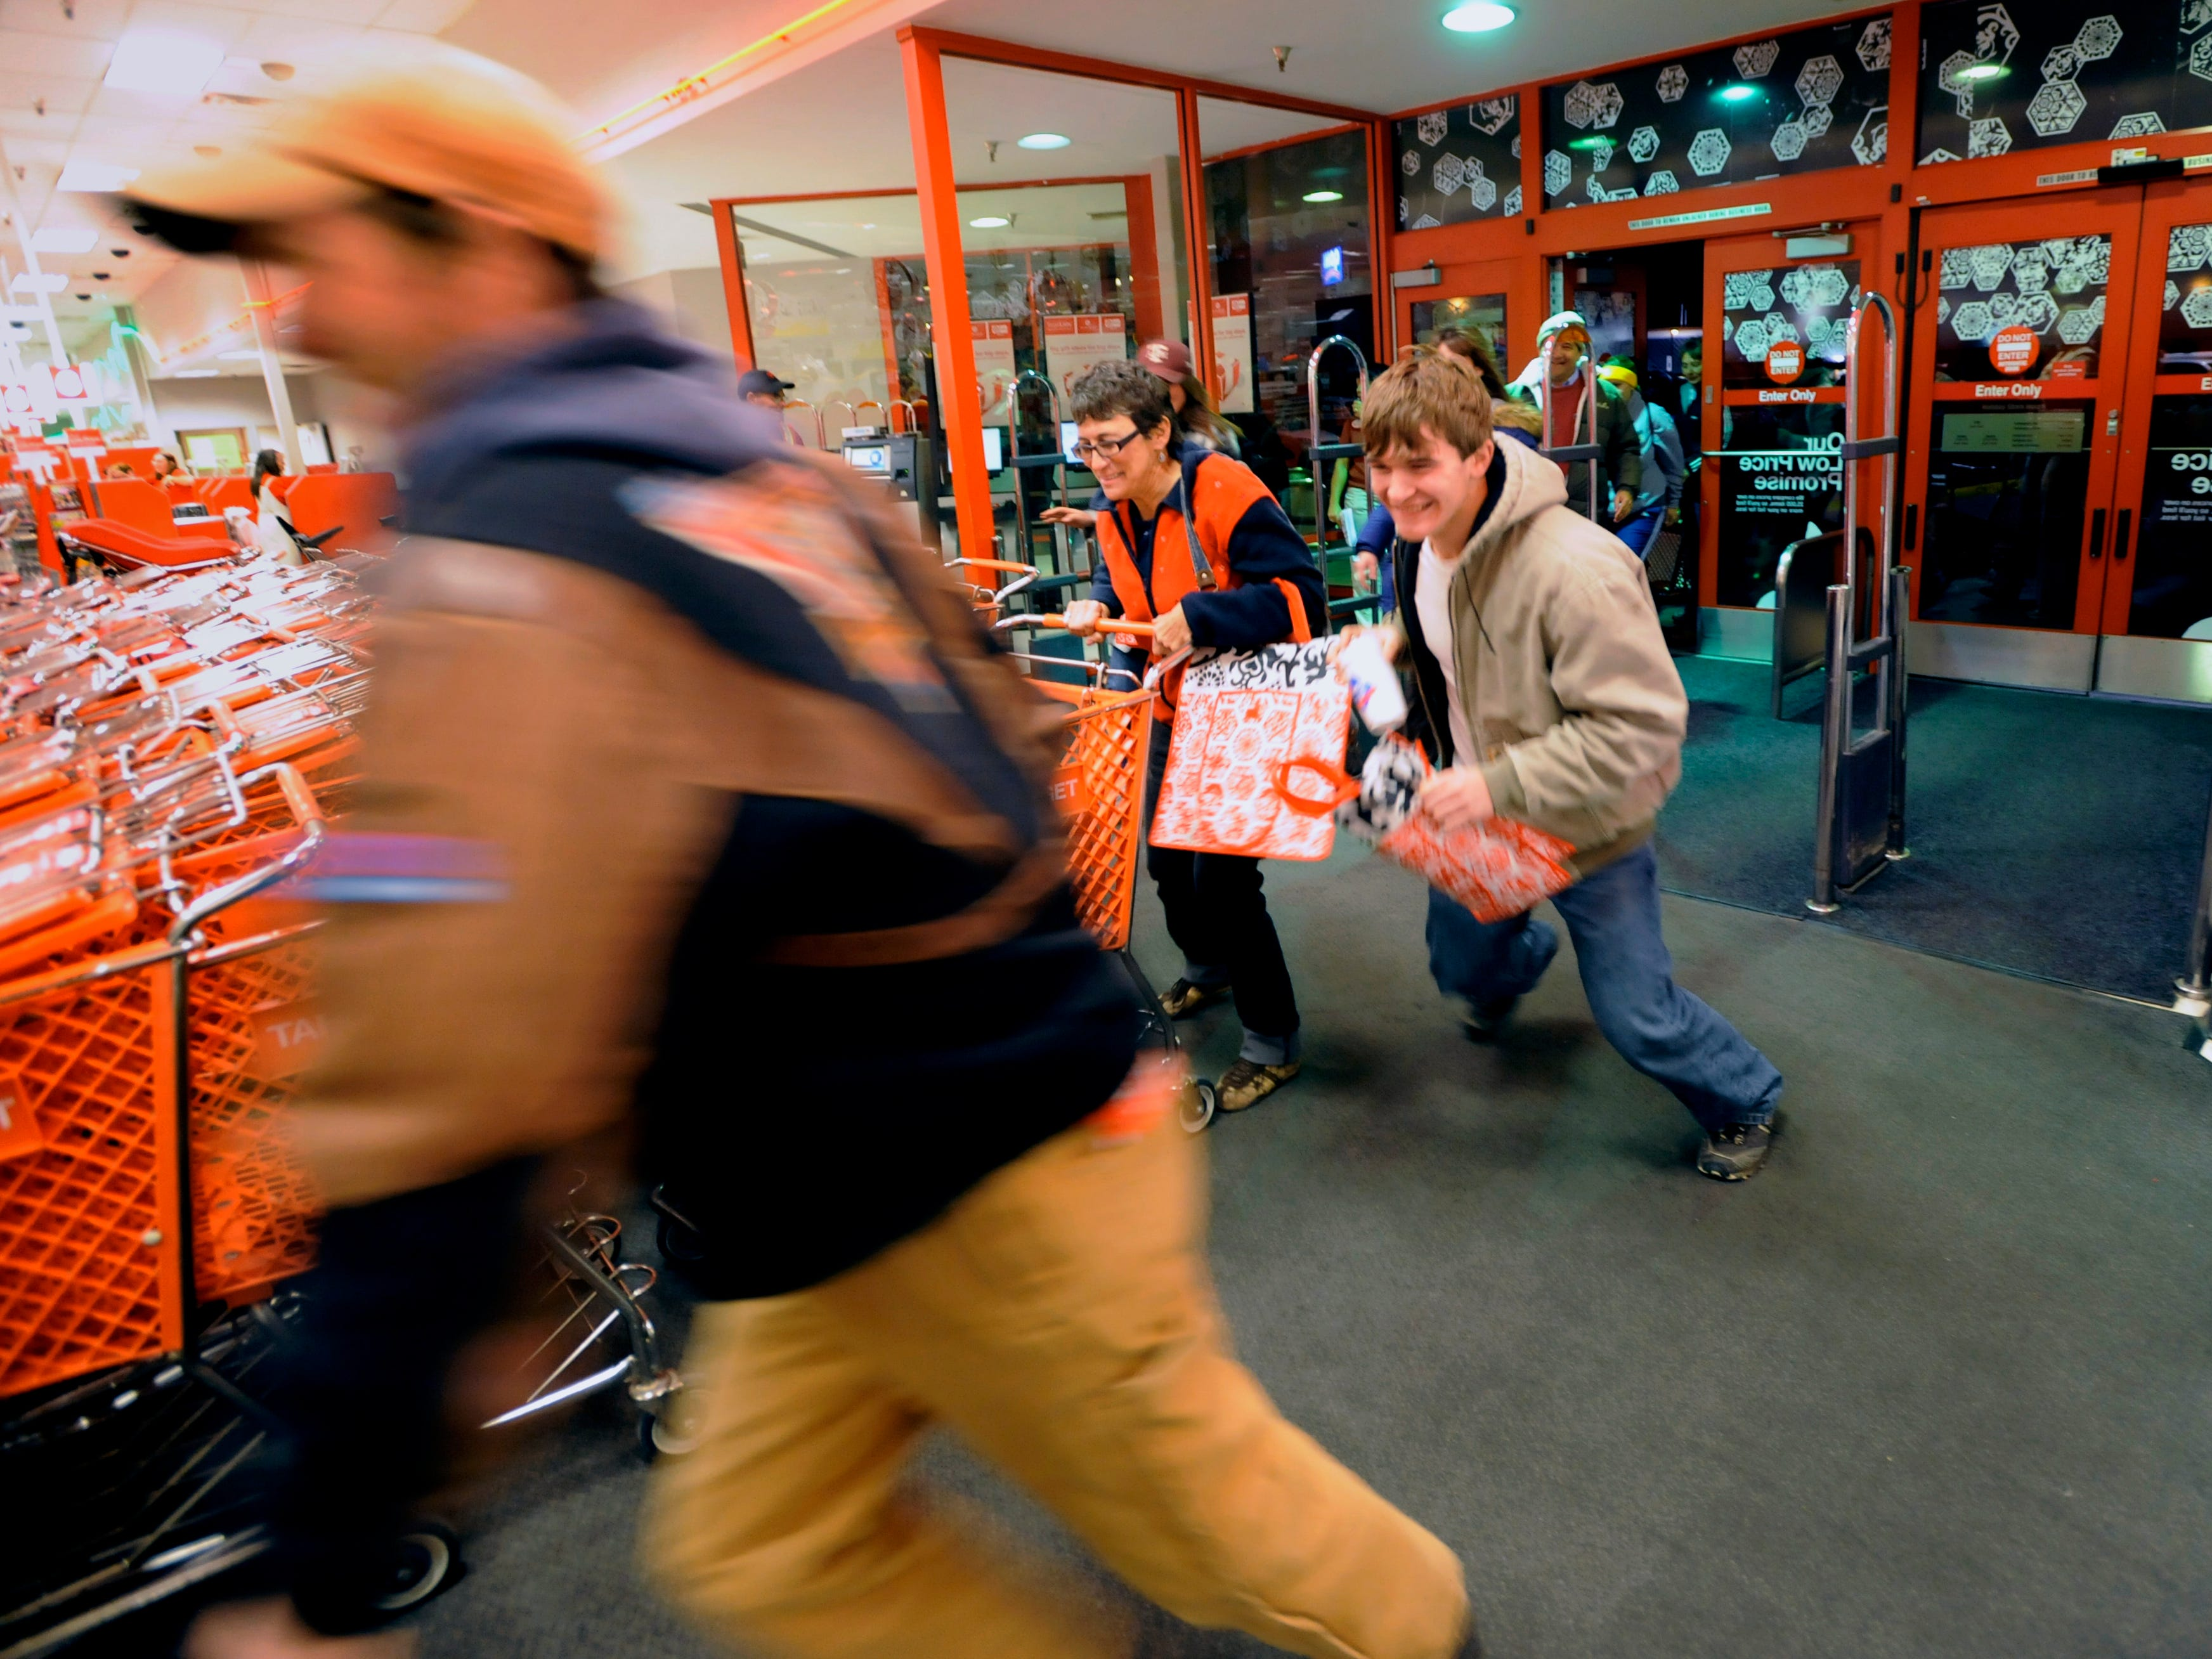 Here's your Black Friday 2018 guide with store hours, deals and more in El Paso